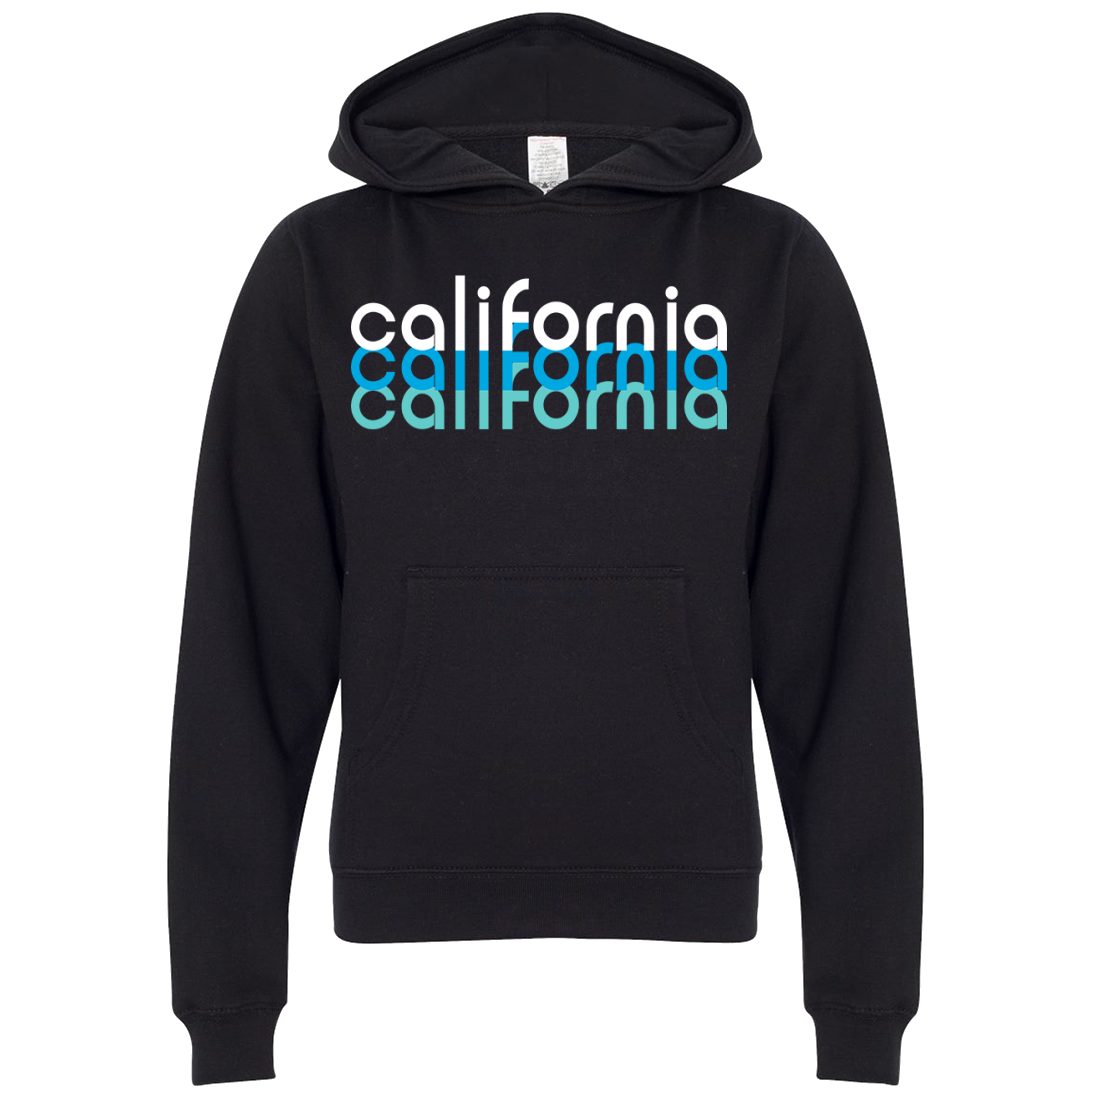 California Cool Stacked Premium Youth Sweatshirt Hoodie